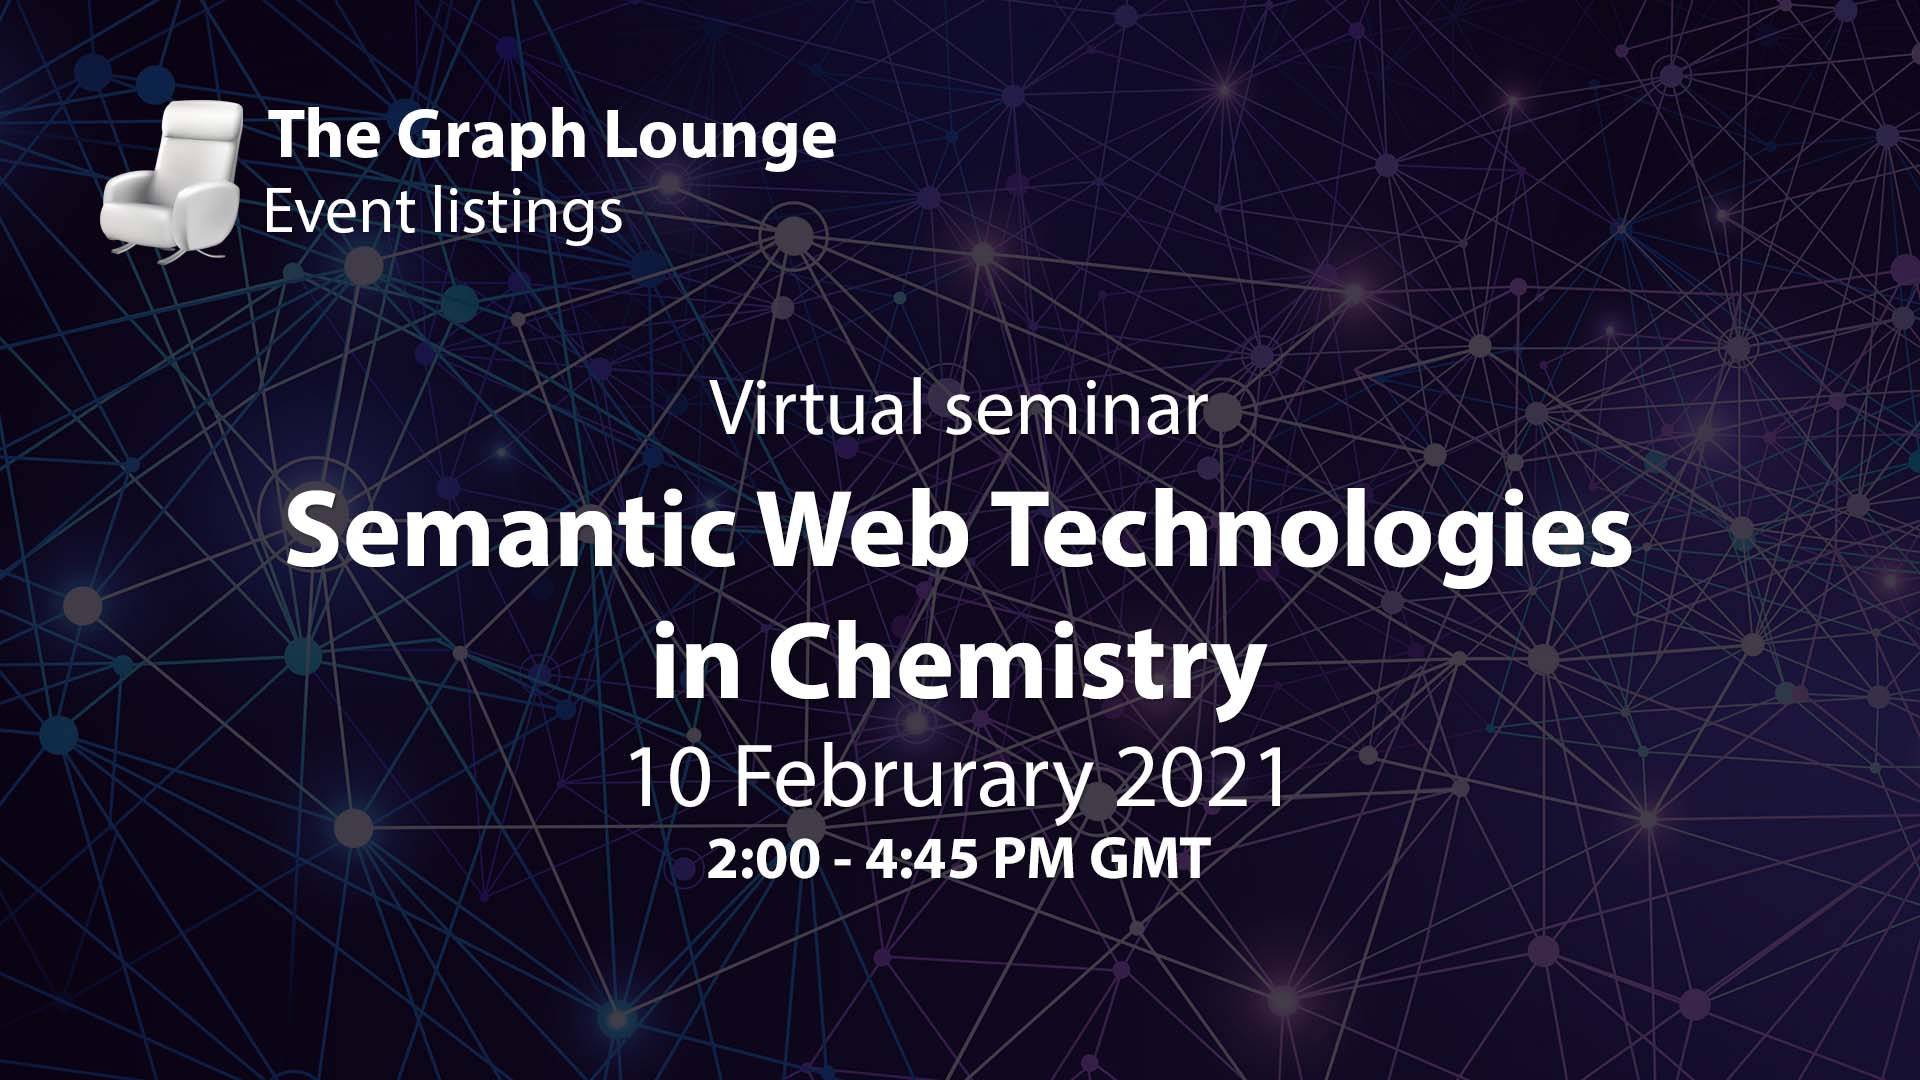 Semantic Web Technologies in Chemistry